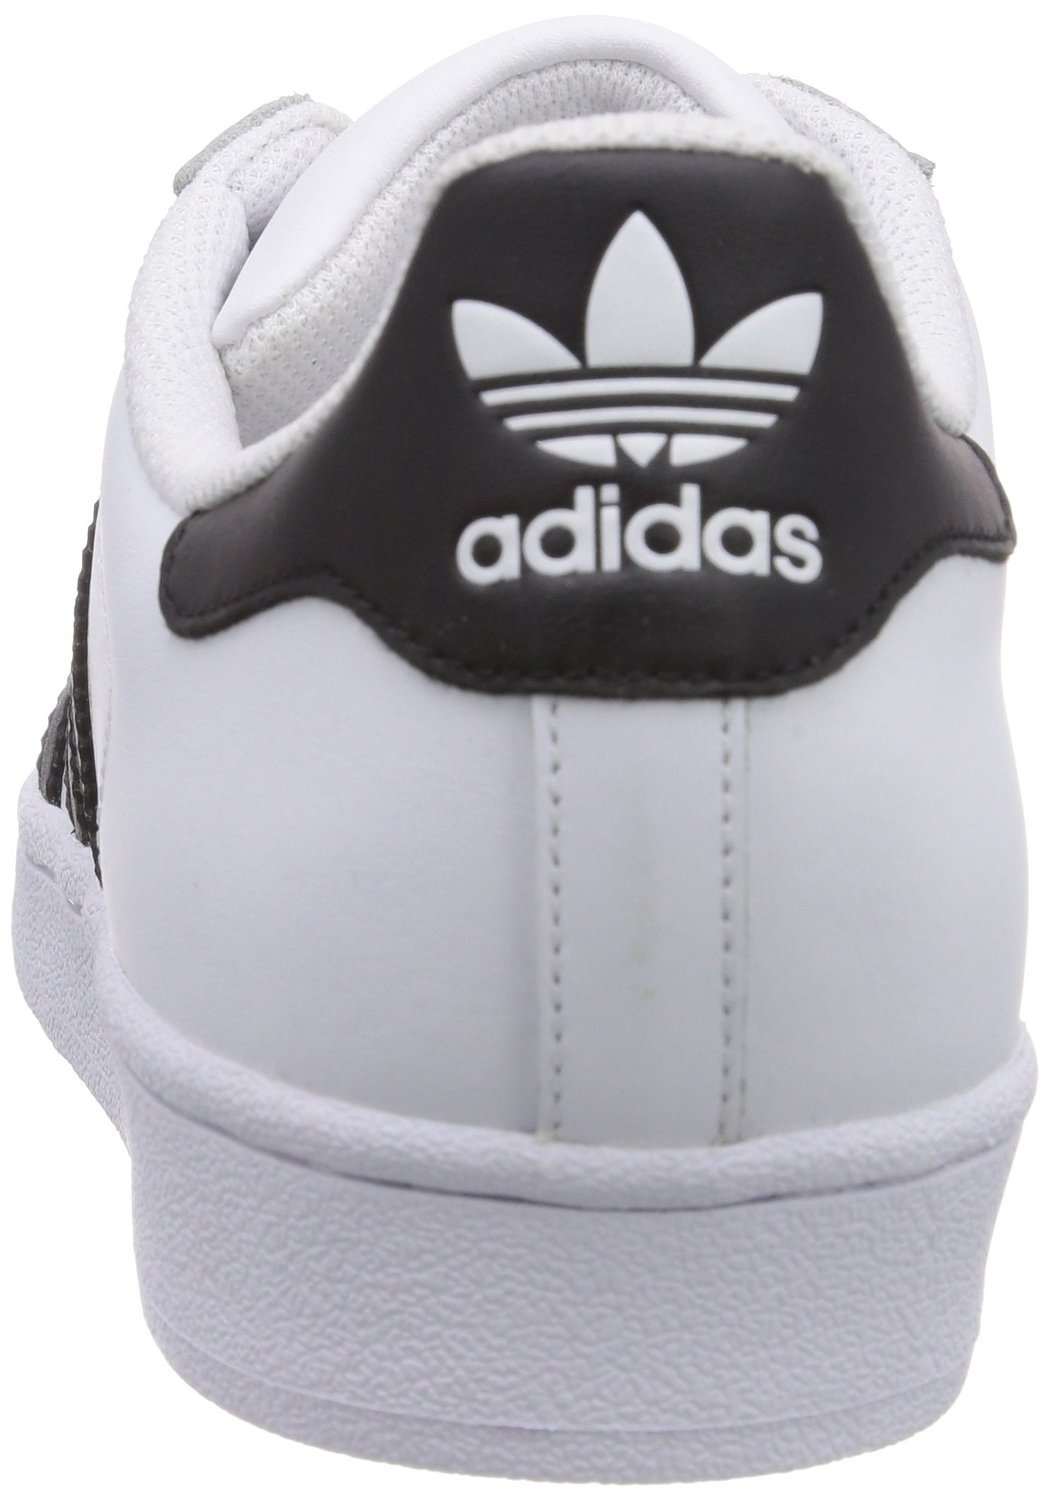 new arrival 64dac aabe1 Adidas Superstar II Original Mens Trainers/Sneakers White ...